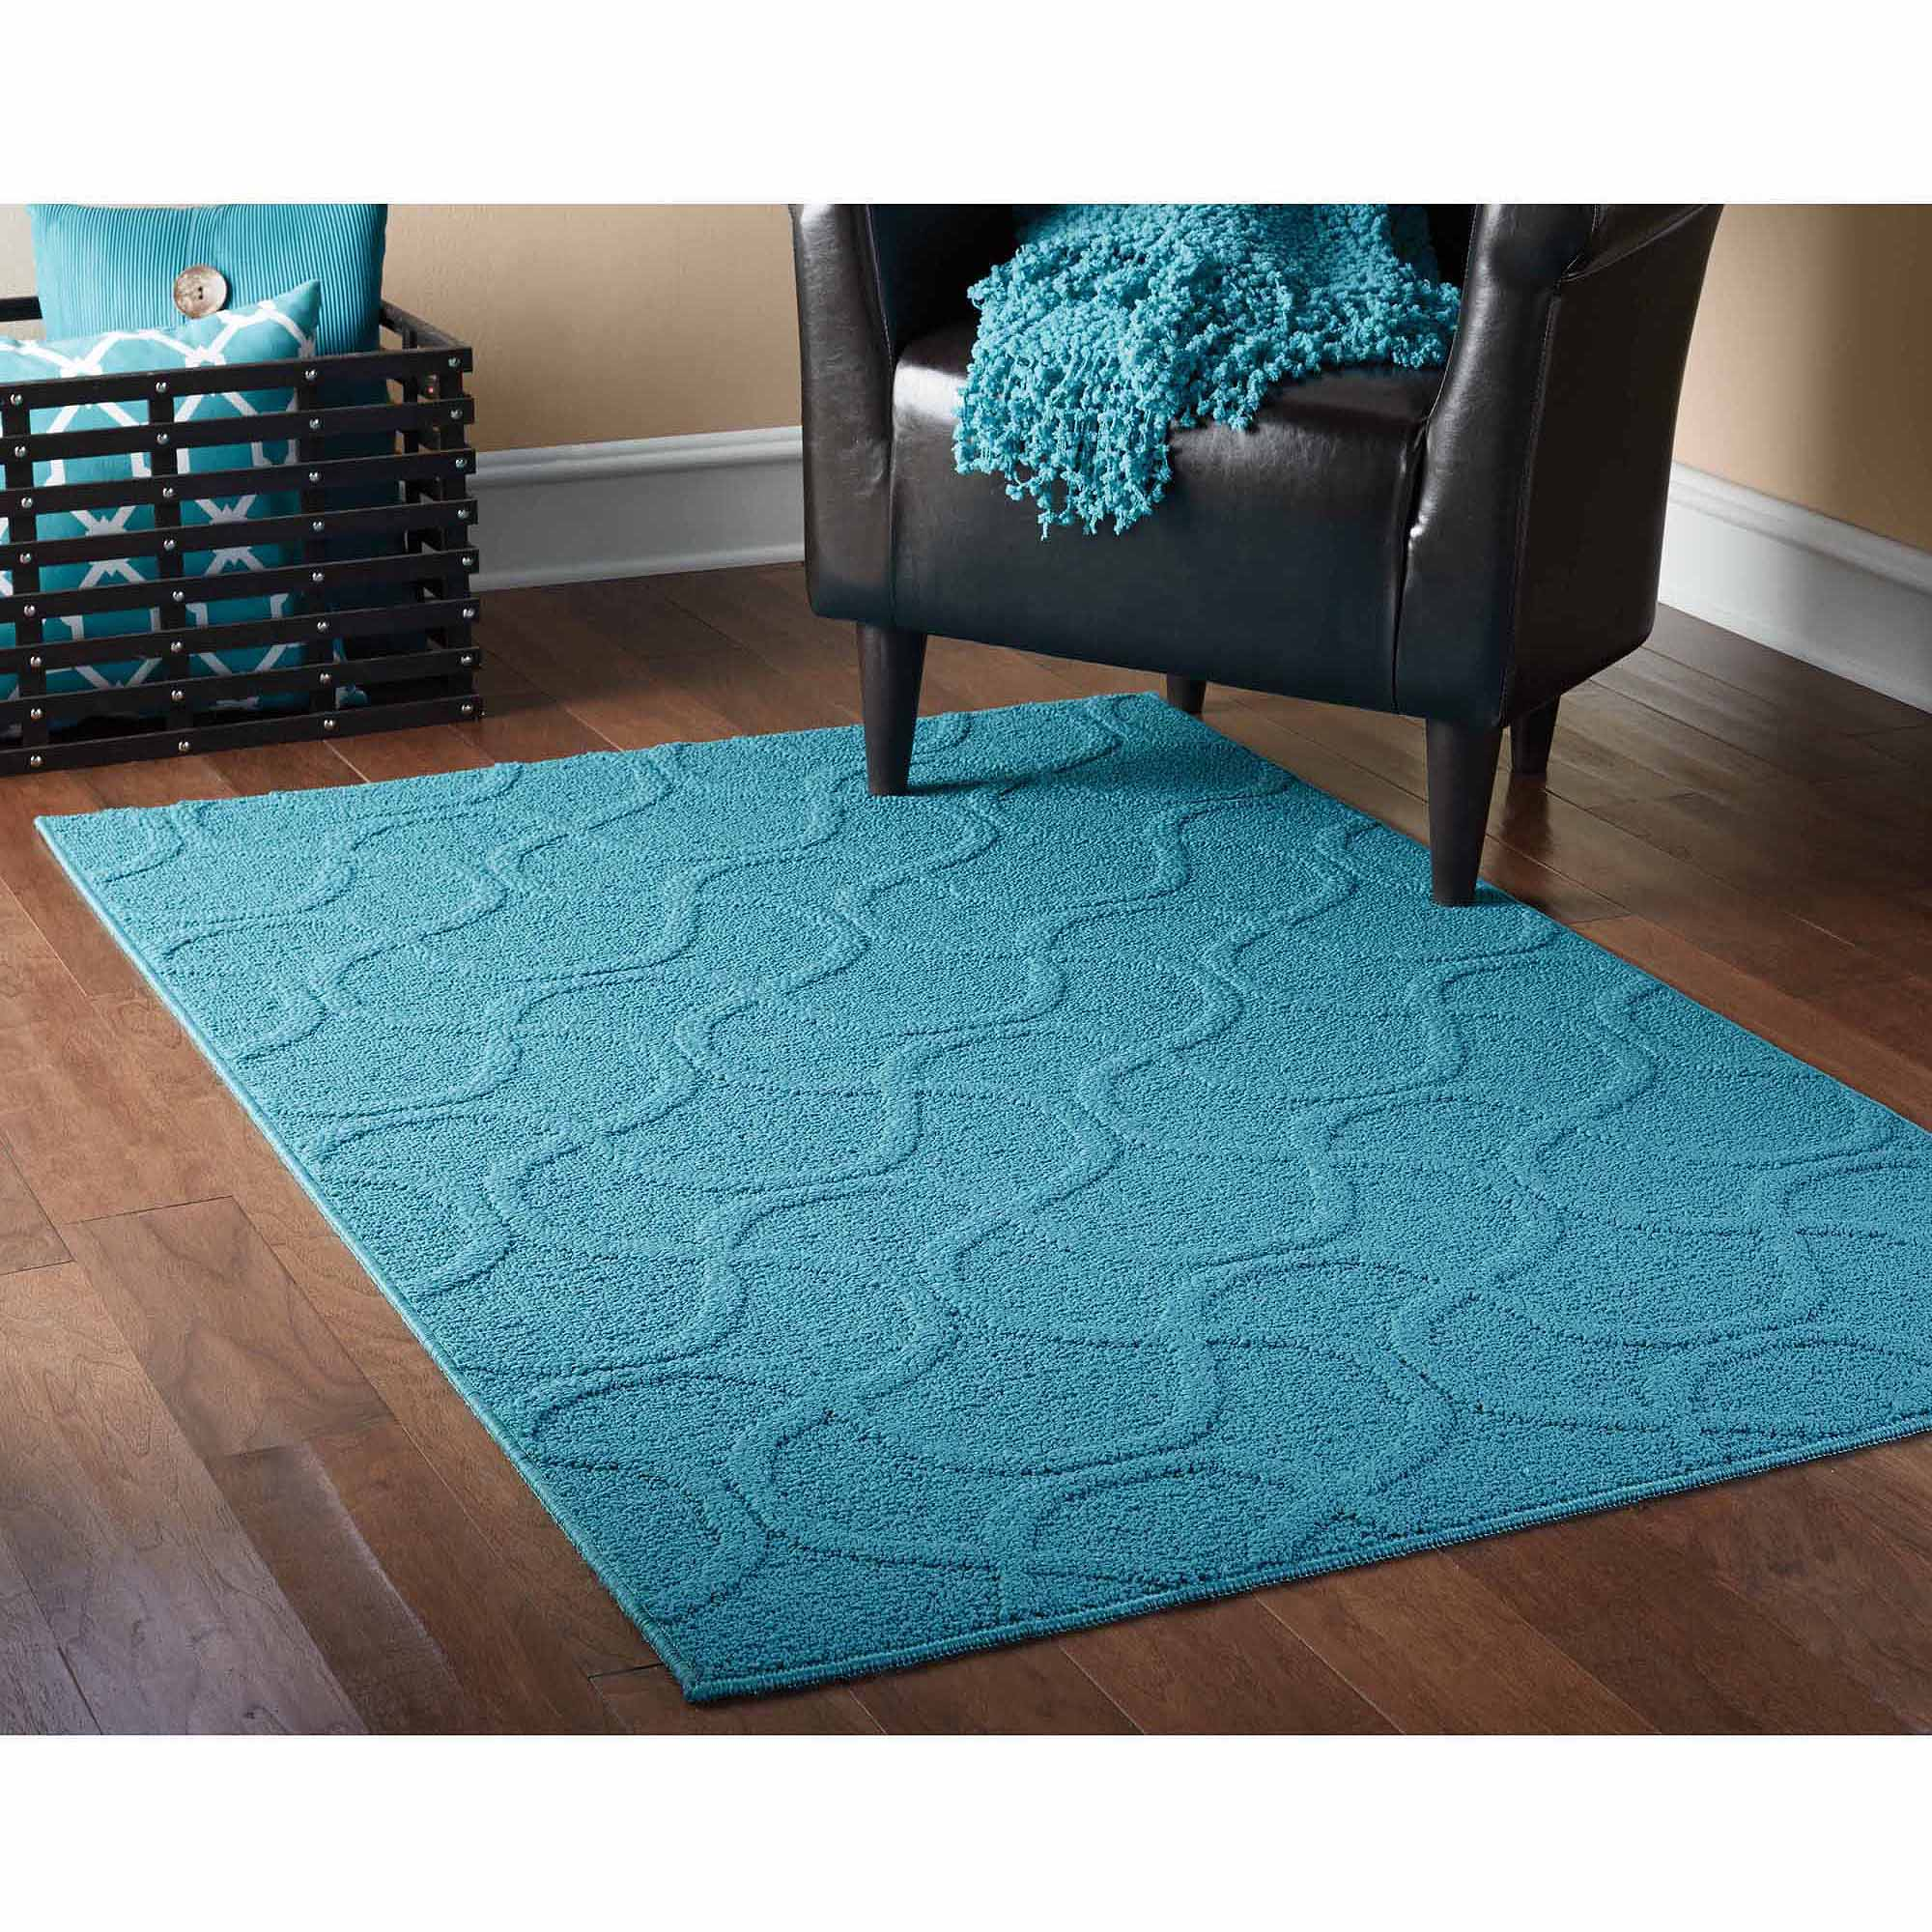 Mainstays Brentwood Collection Area Rug - Walmart.com